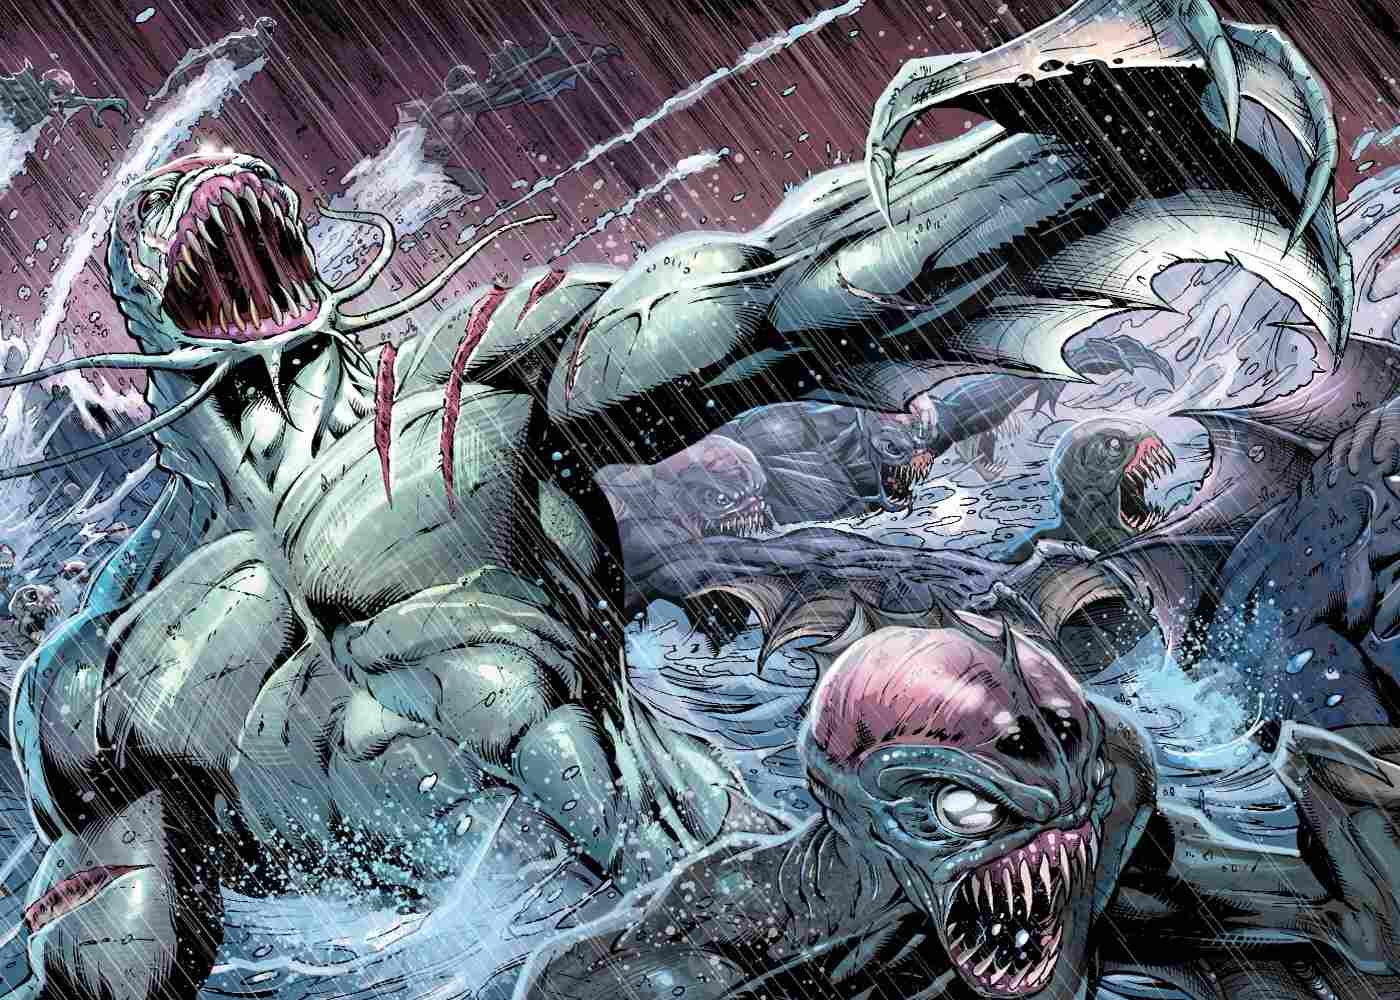 Details on Creatures Reported to Feature in Aquaman